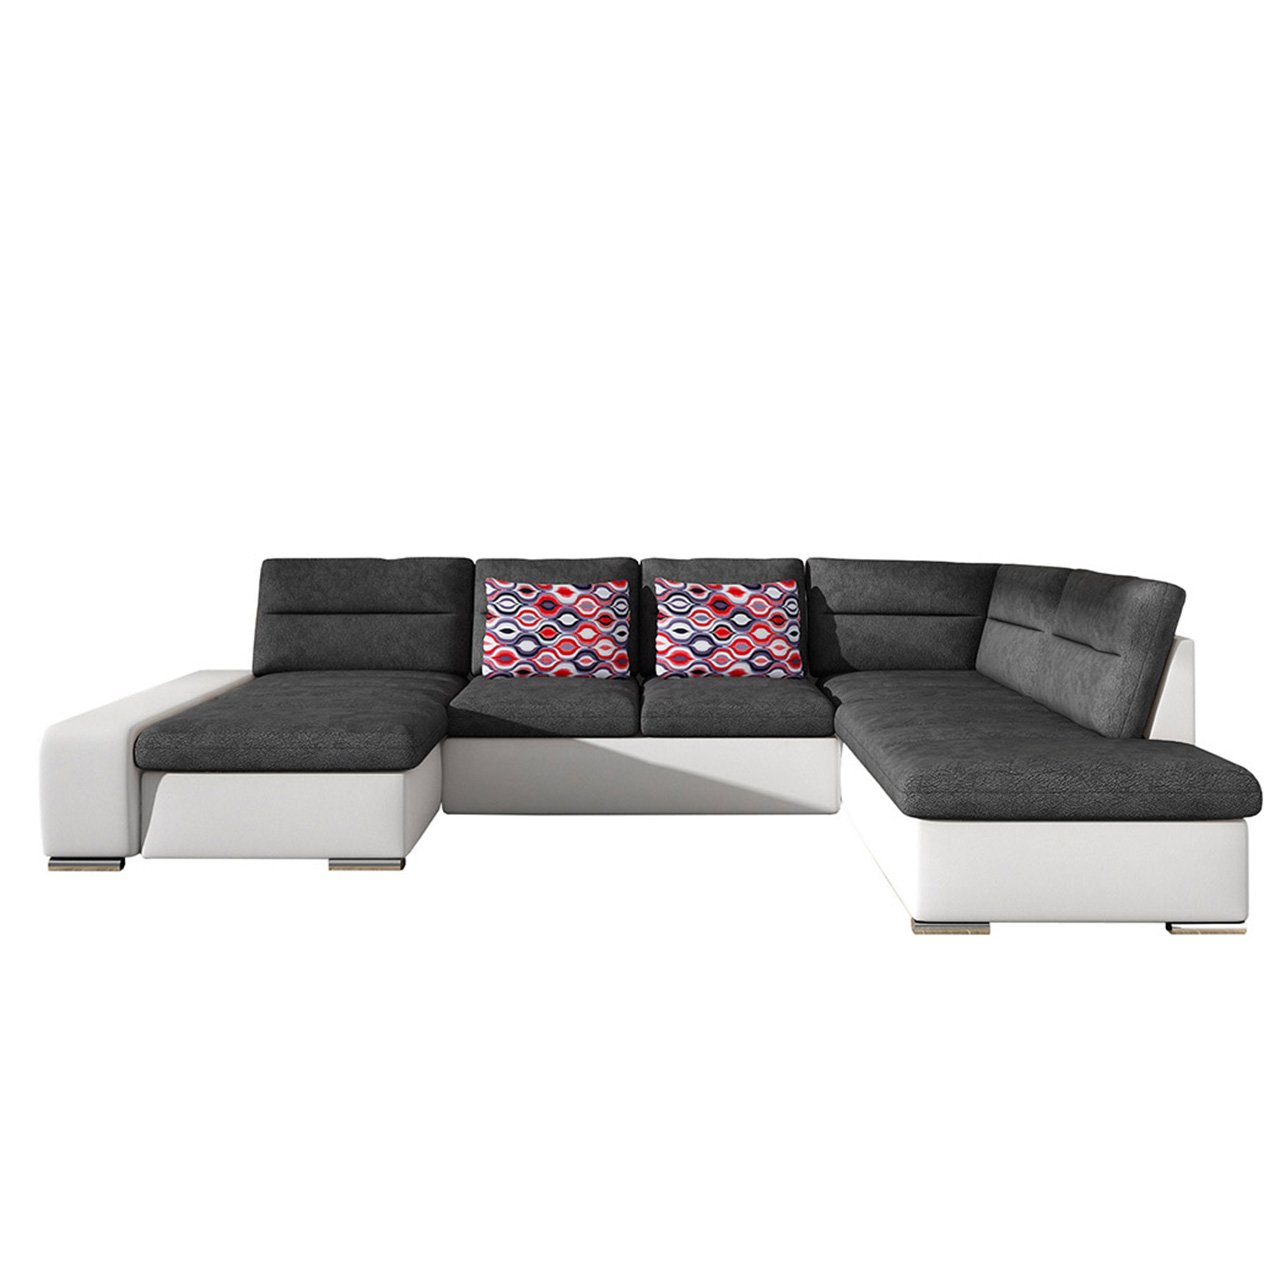 design ecksofa togo gro es eckcouch mit schlaffunktion. Black Bedroom Furniture Sets. Home Design Ideas